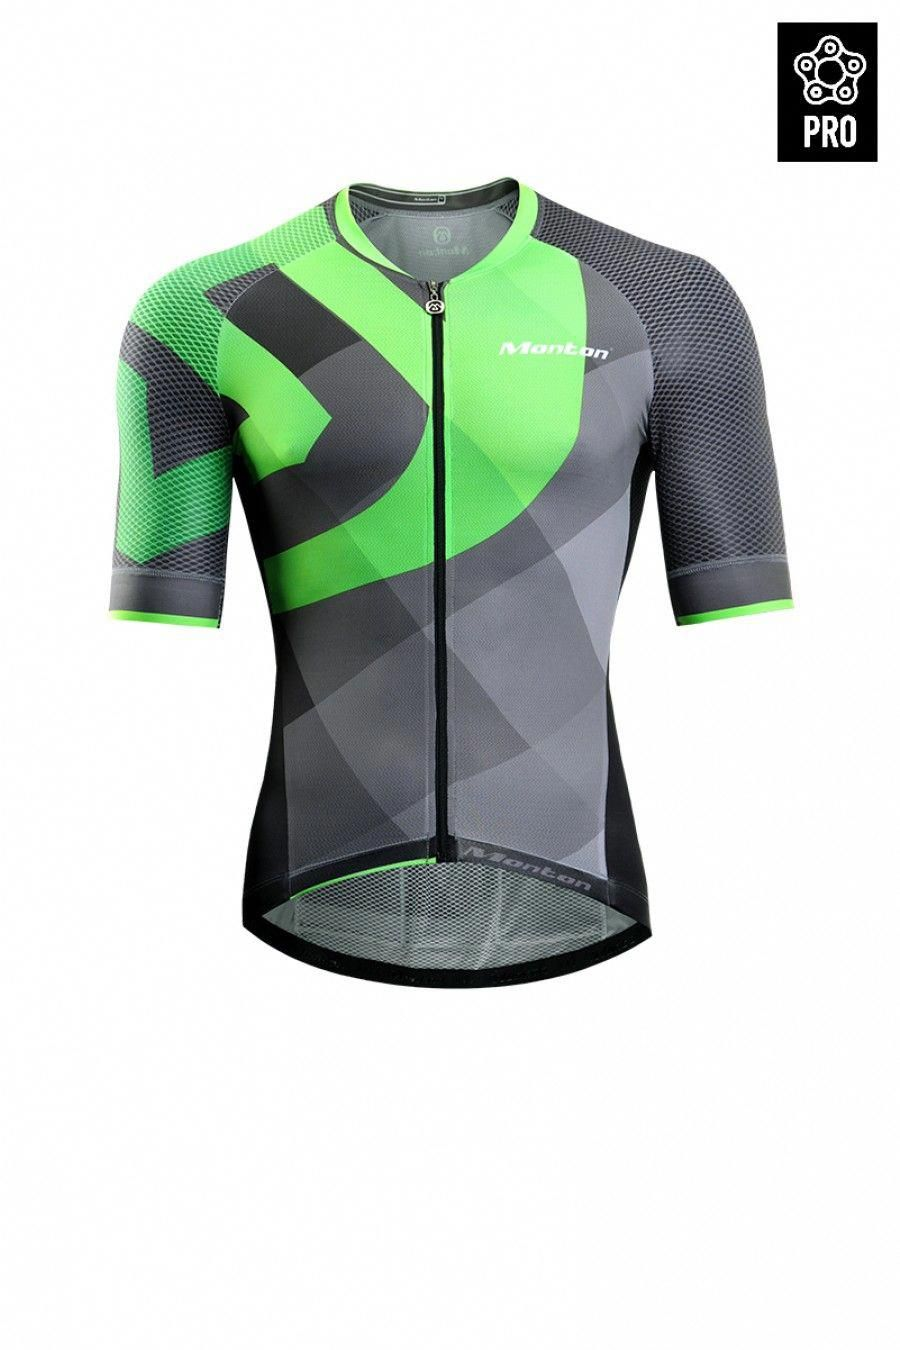 a83c76c1a81 cool bike jerseys  #bikeaccessories,mensbikes,bicycleaccessories,women'sbicycles,bestroadbikes,bikecycling,cyclingclothing,gearbicycle,bestbicycle  ...